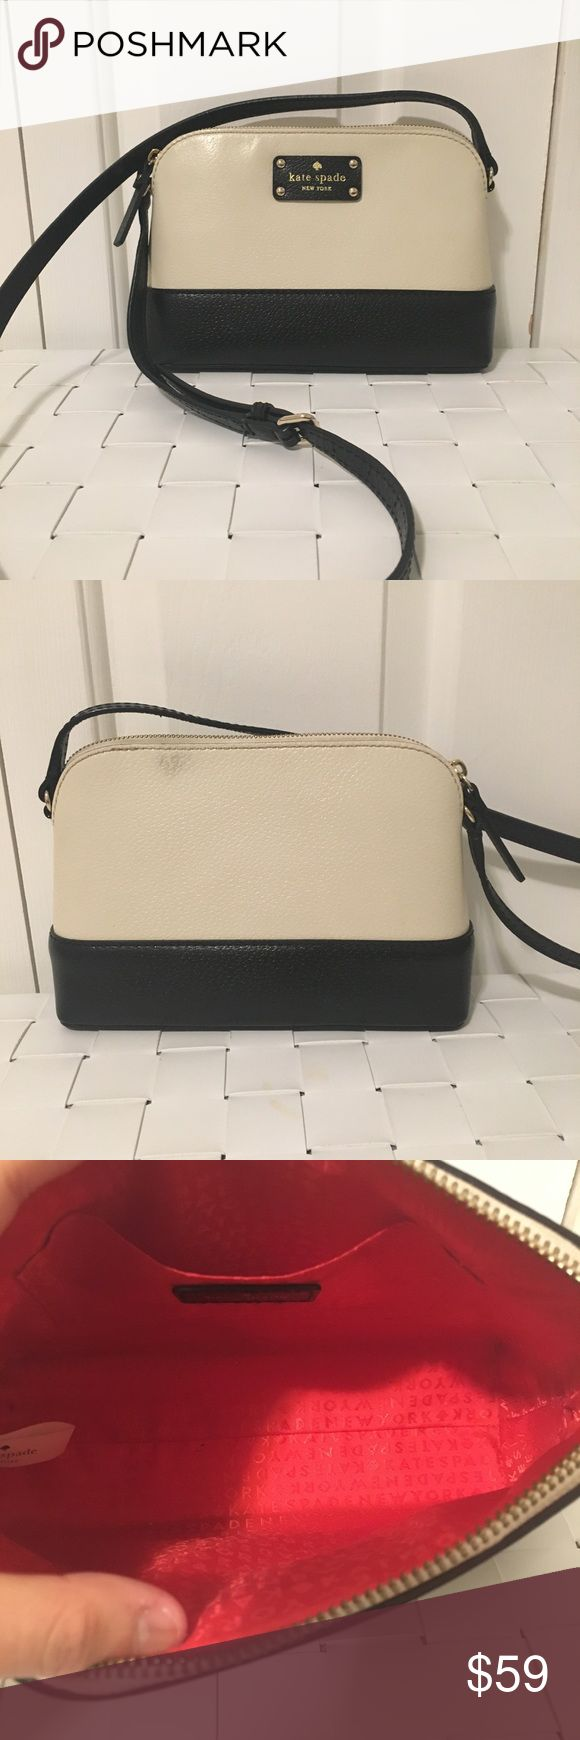 Kate spade Wellesley hanna Crossbody bag Black and cream Crossbody bag In good condition  Minor stain on back of bag Slight stains on the interior  Beautiful Crossbody bag Slight color fading beside zipper pull on top kate spade Bags Crossbody Bags